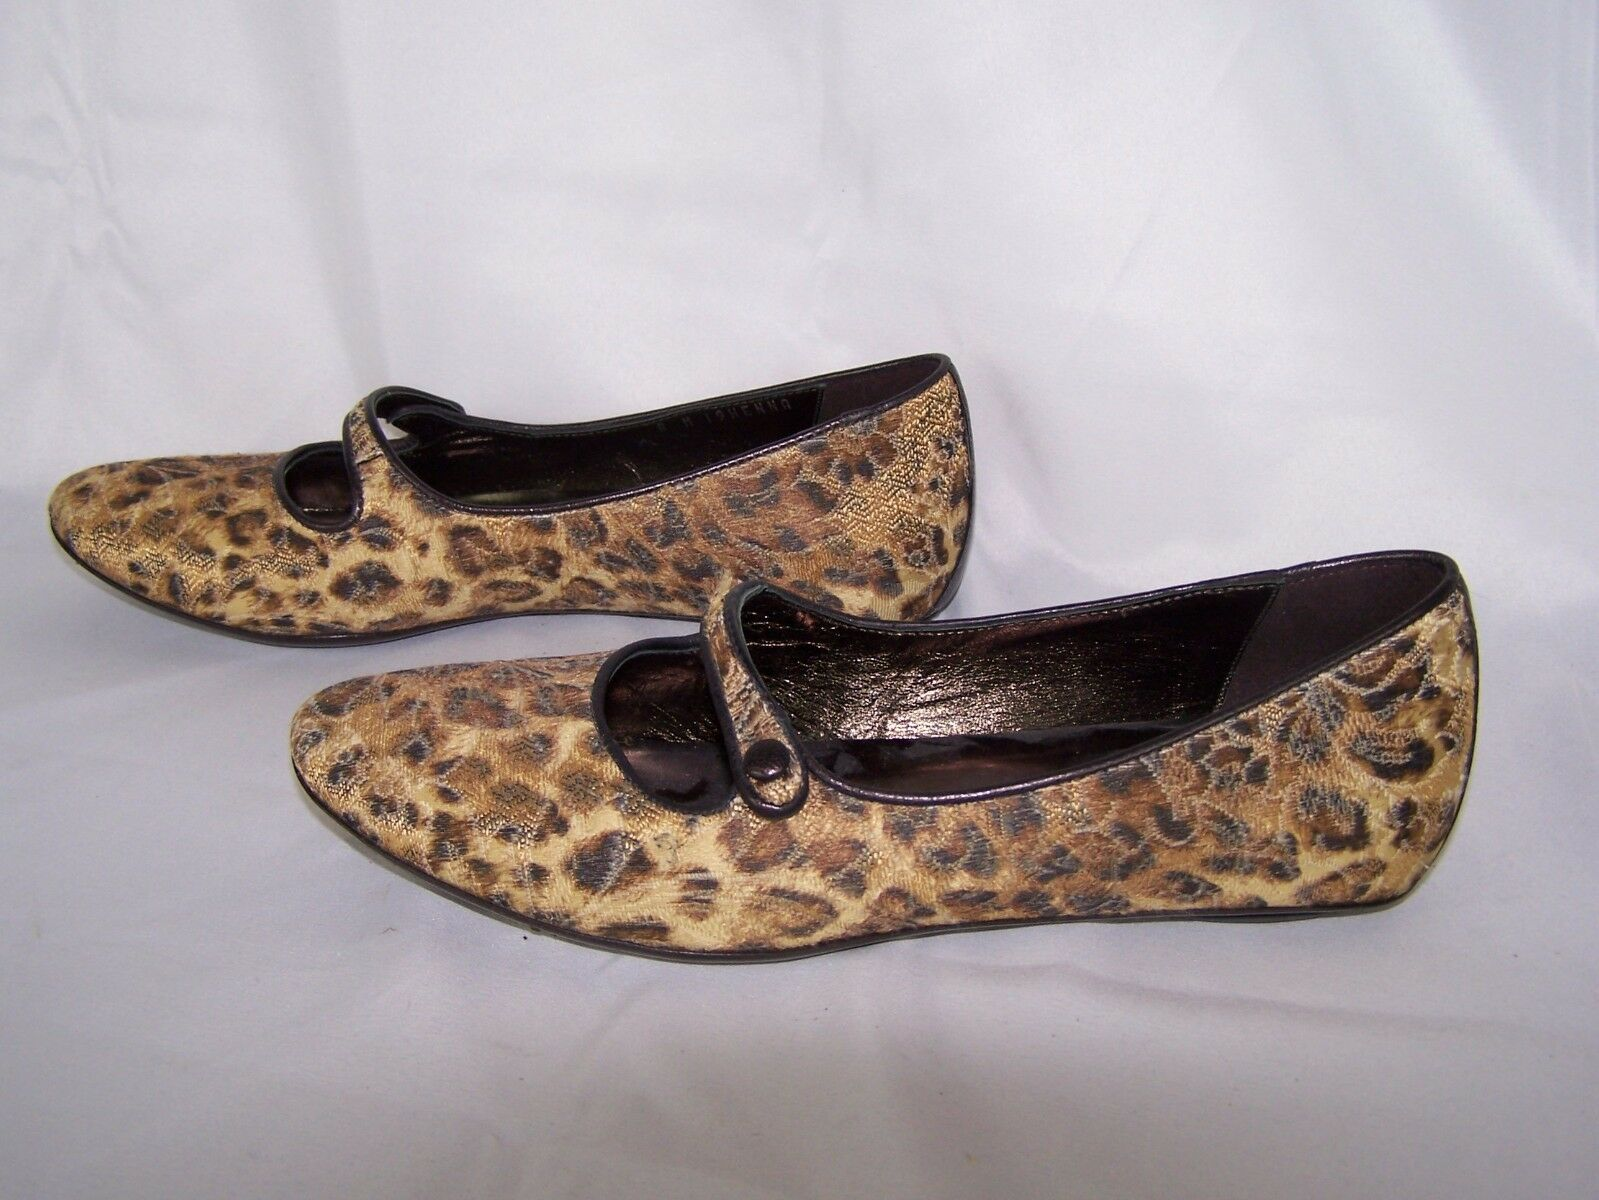 Donald J. Pliner Couture Animal Print Henna Mary Jane Flats Shoes Women's 8 M